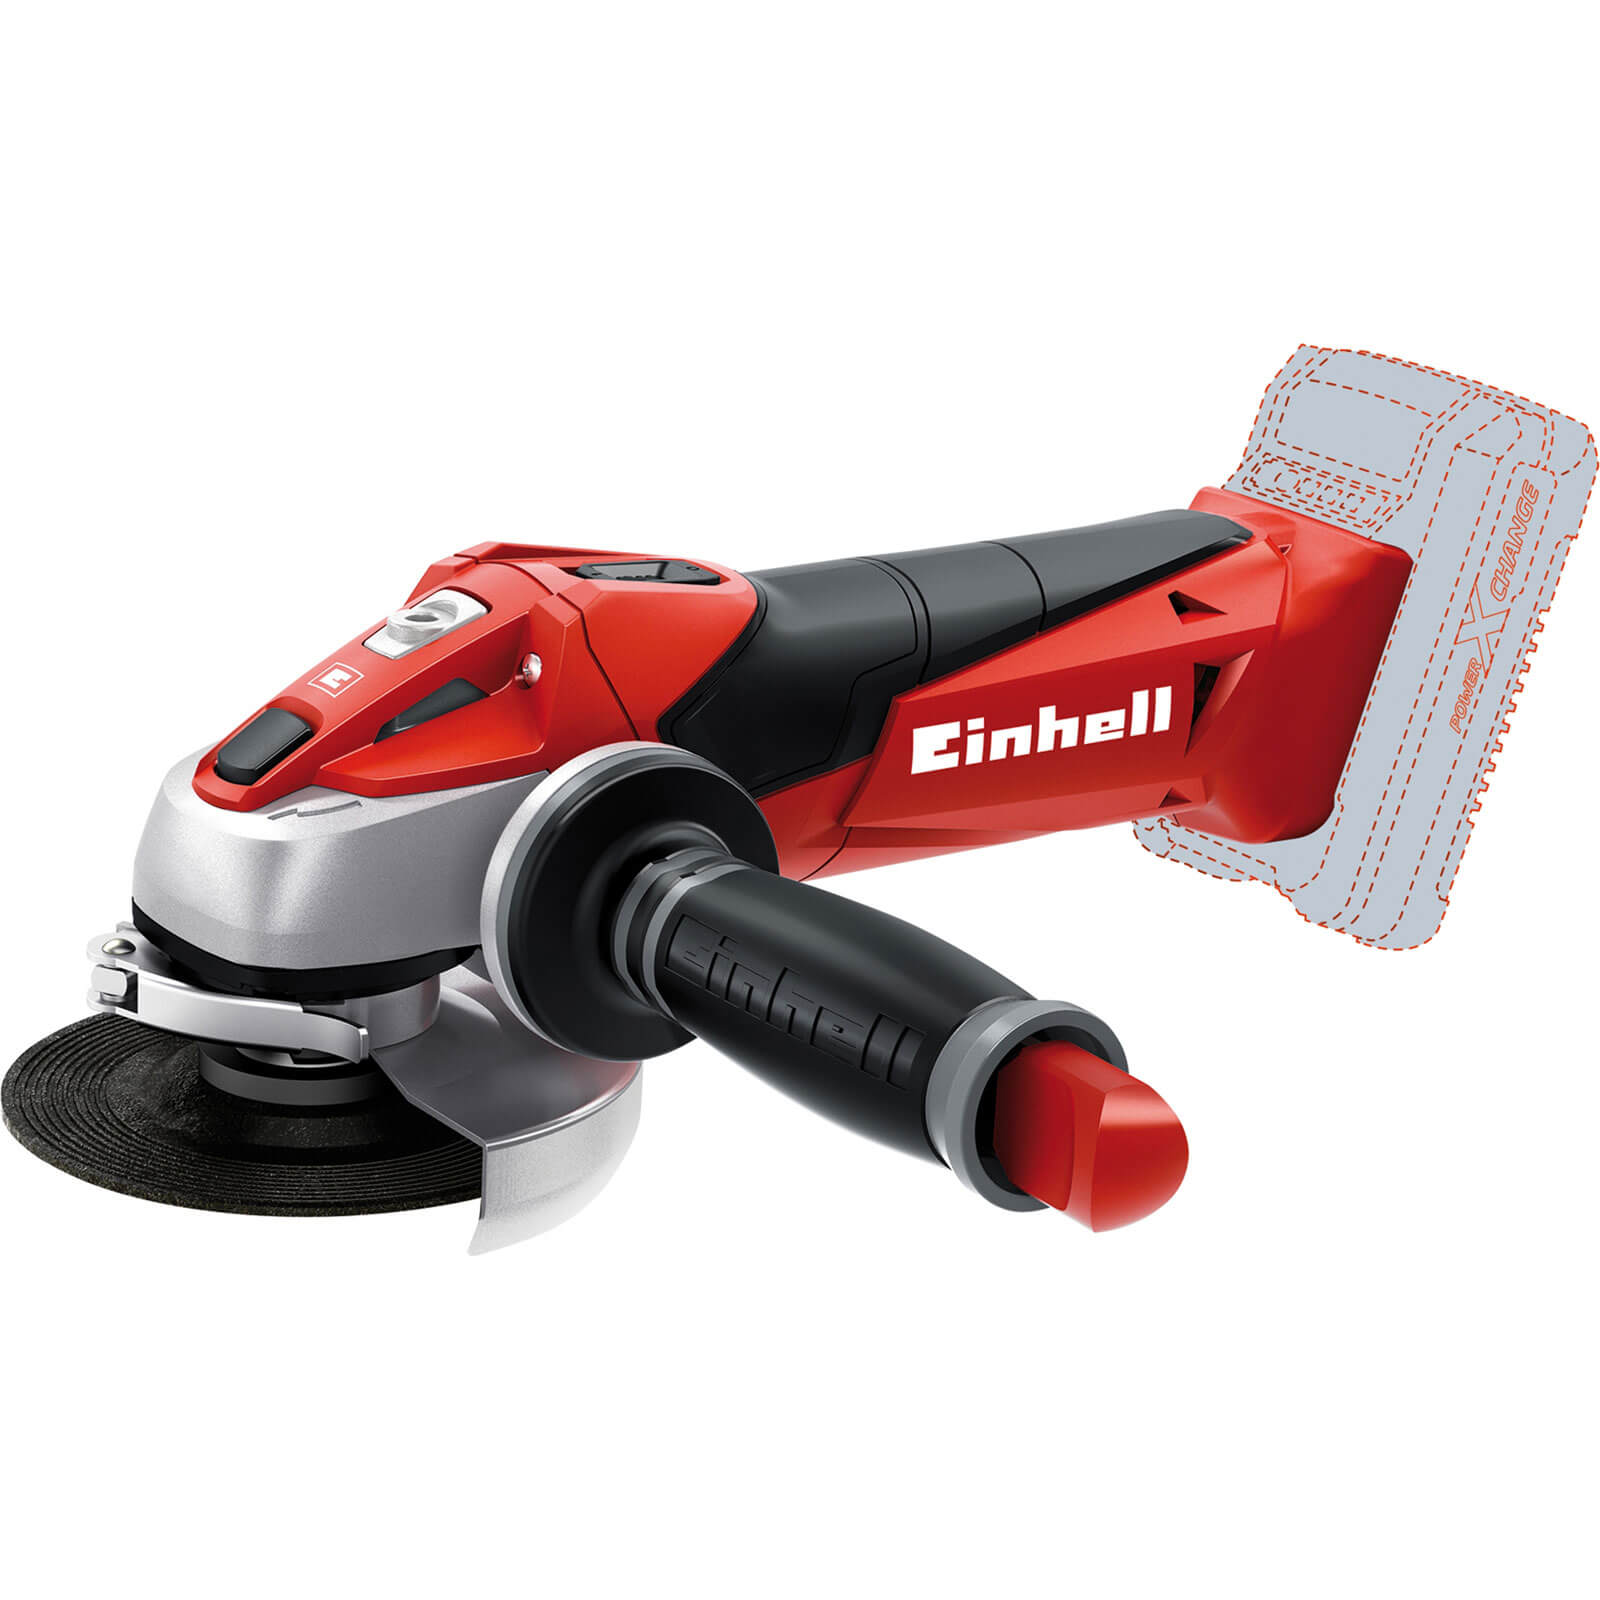 Einhell TE-AG 18LI 18v Power X-Change Cordless Angle Grinder without Battery or Charger